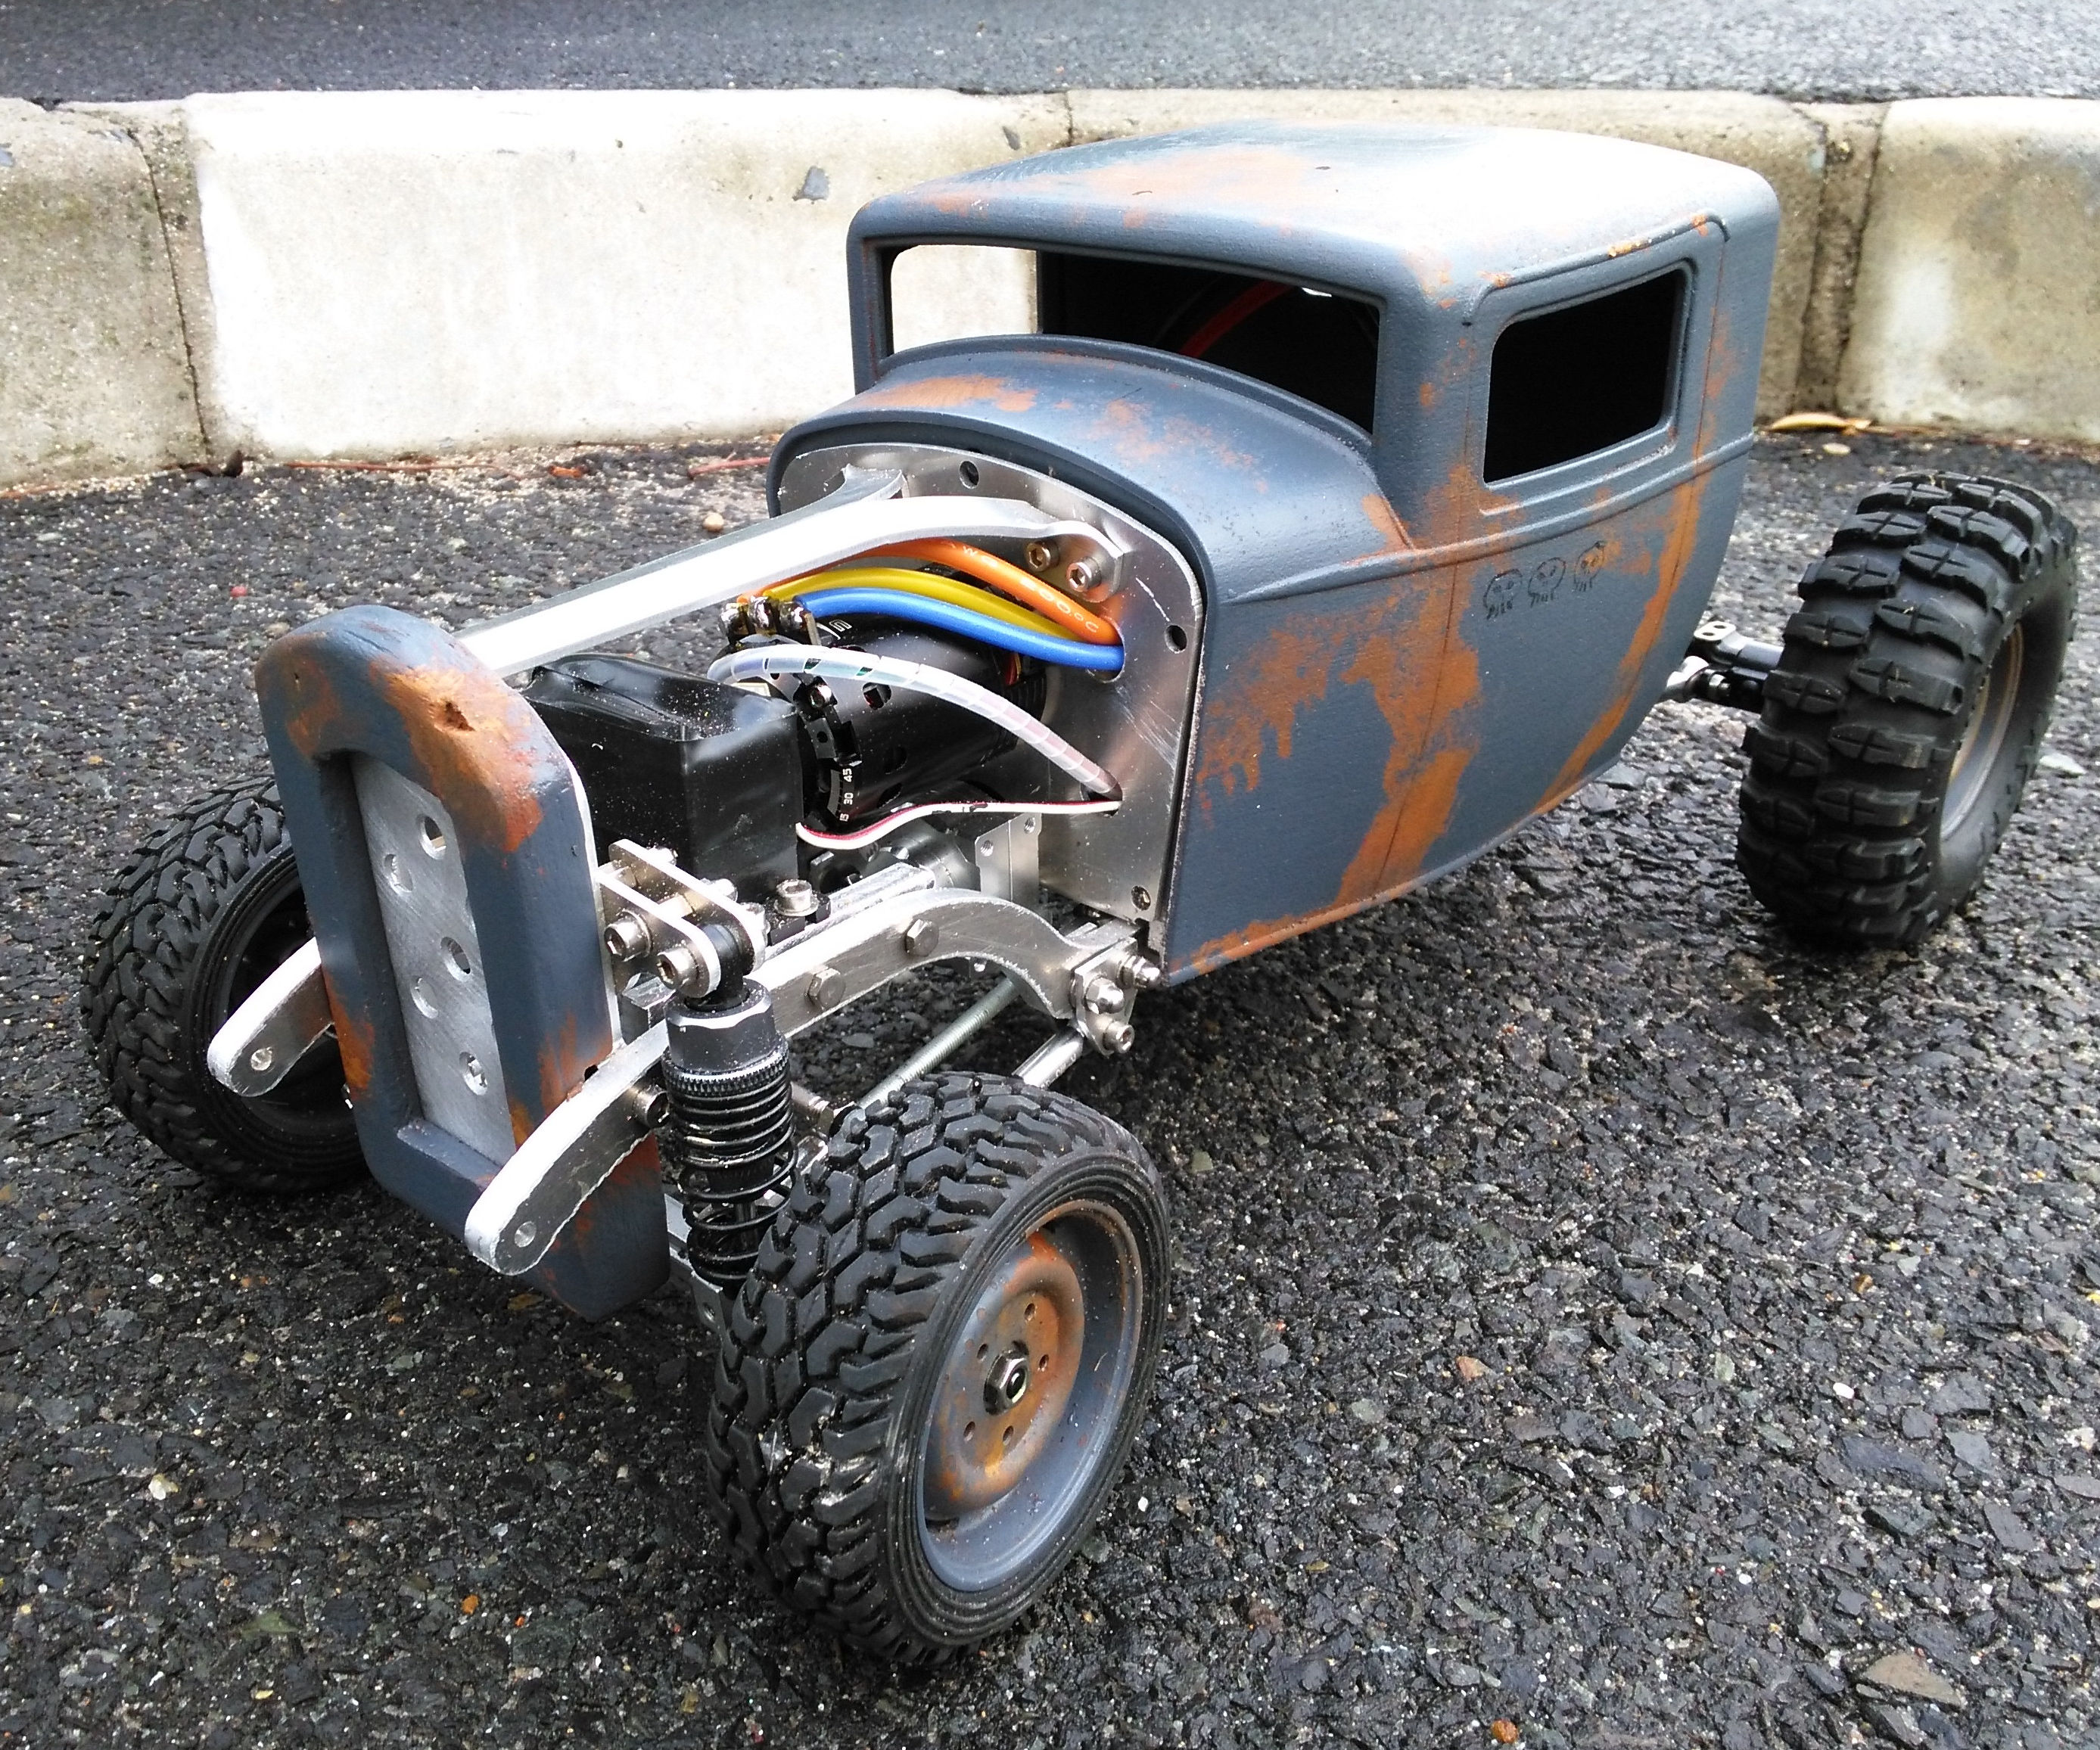 Scratch Build an RC Car with CAD and Rapid Prototyping